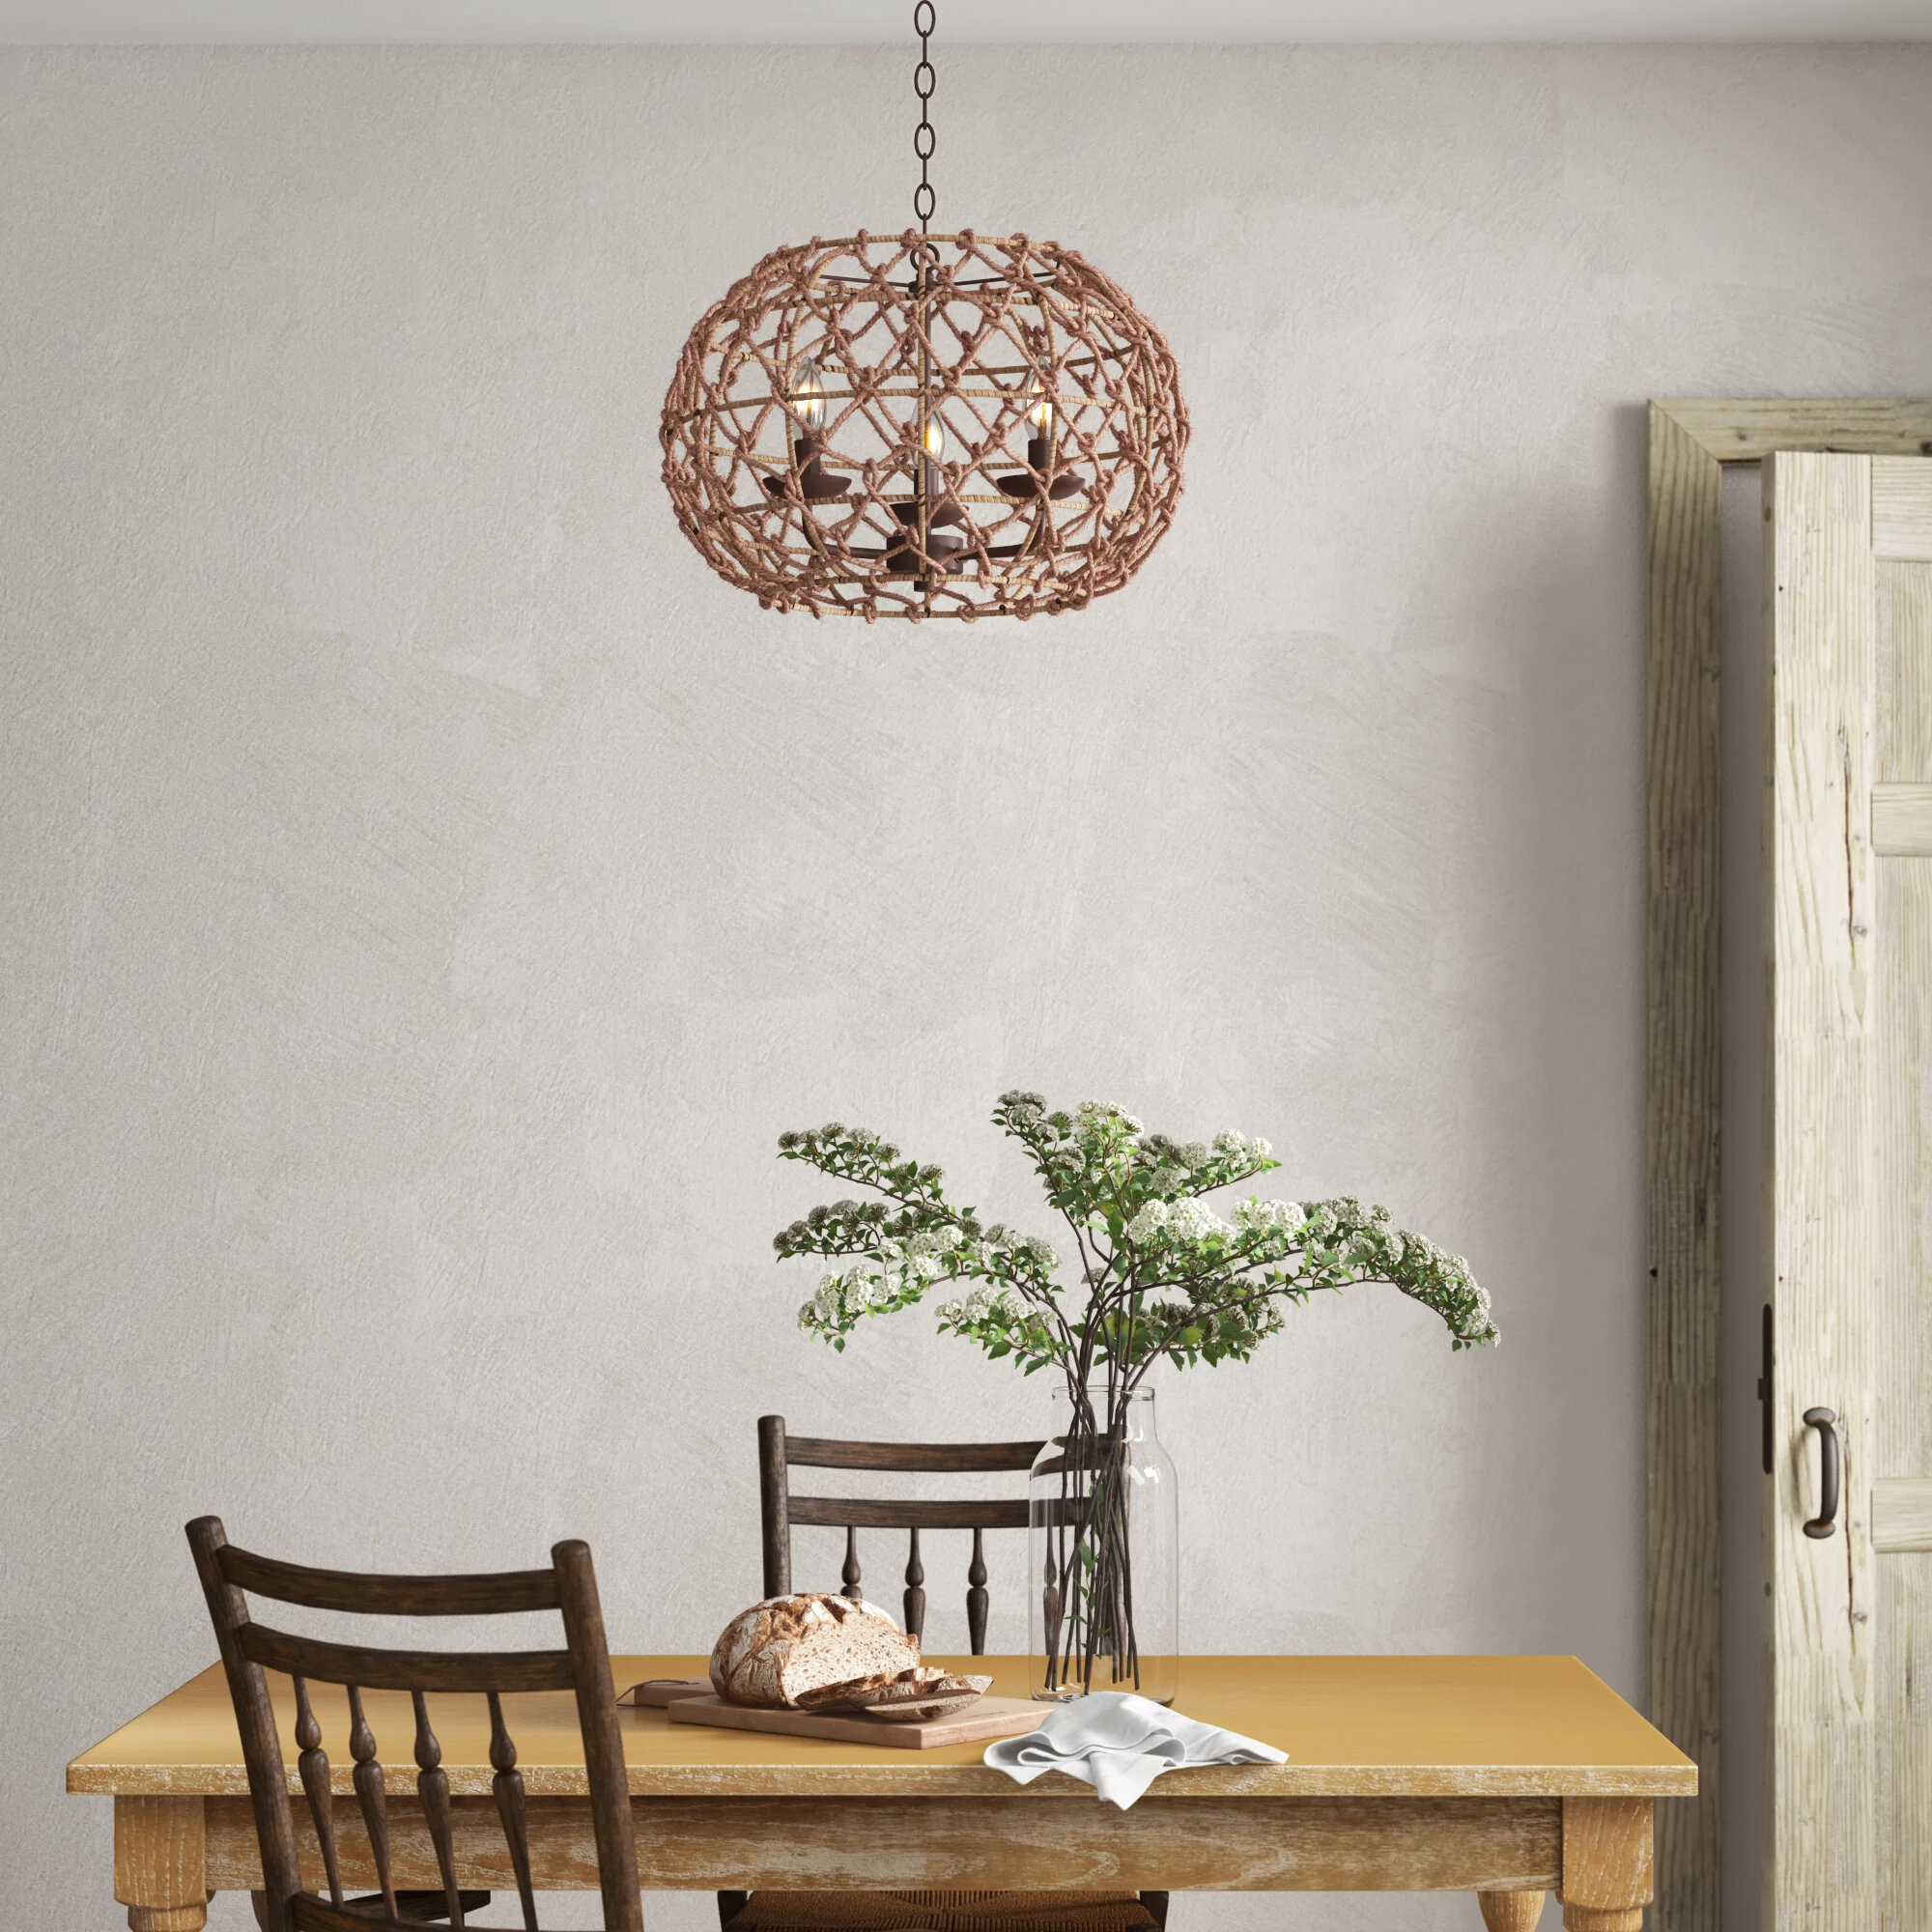 Birch Lane Cadwell 3 Light Candle Style Globe Chandelier With Rope Accents Reviews Wayfair